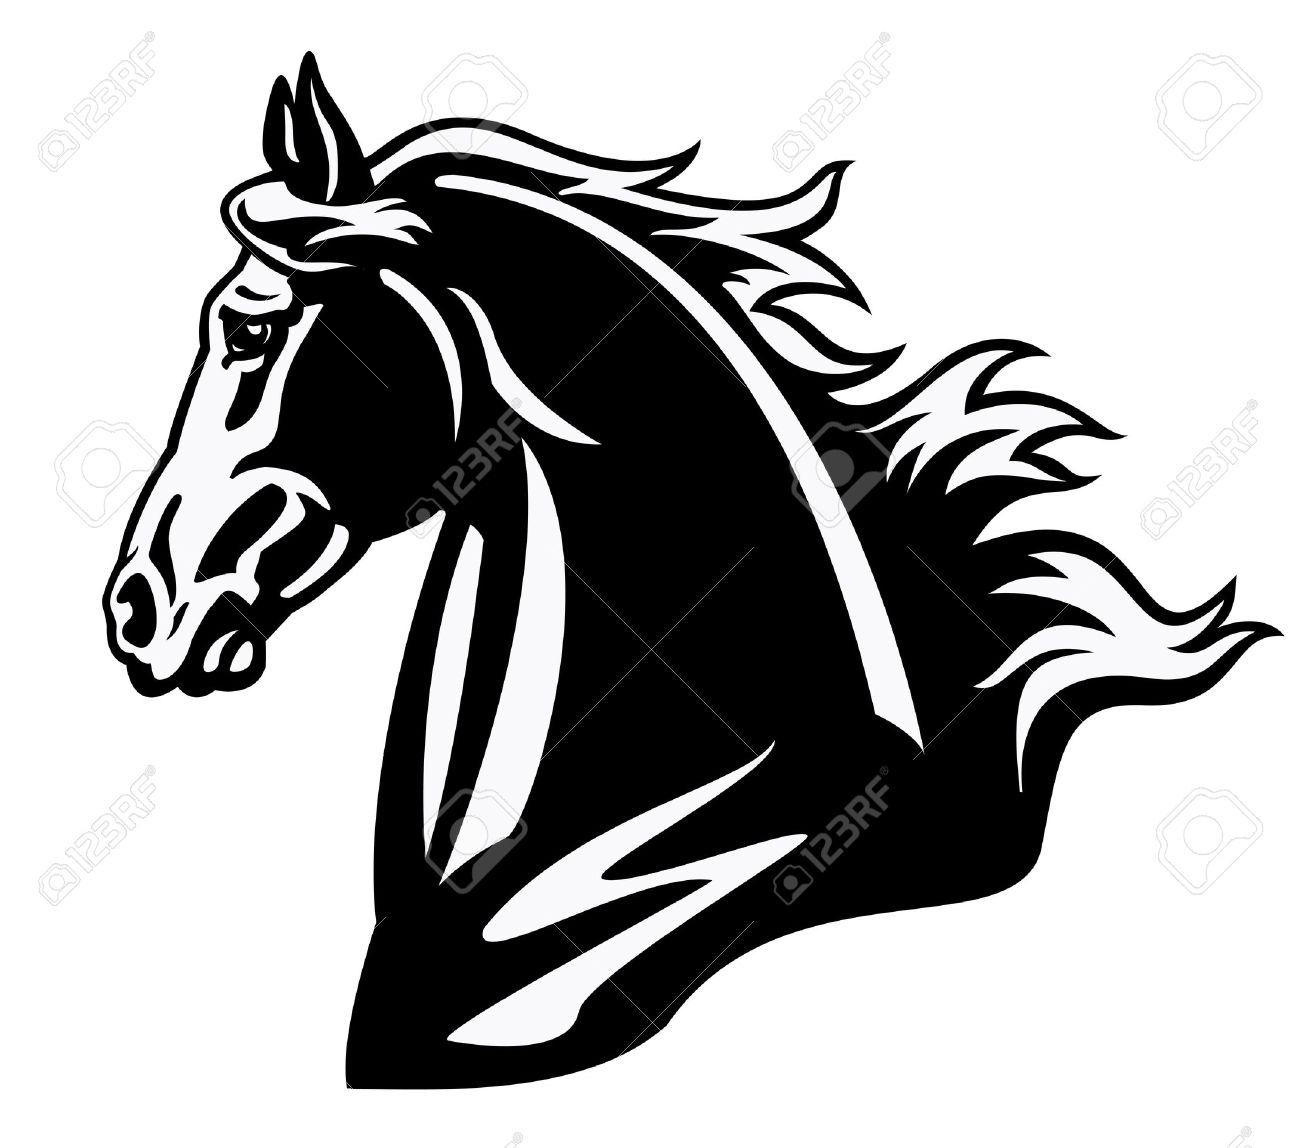 horse head,black and white image ,side view picture isolated on white background,tattoo illustration Stock Vector - 15783694